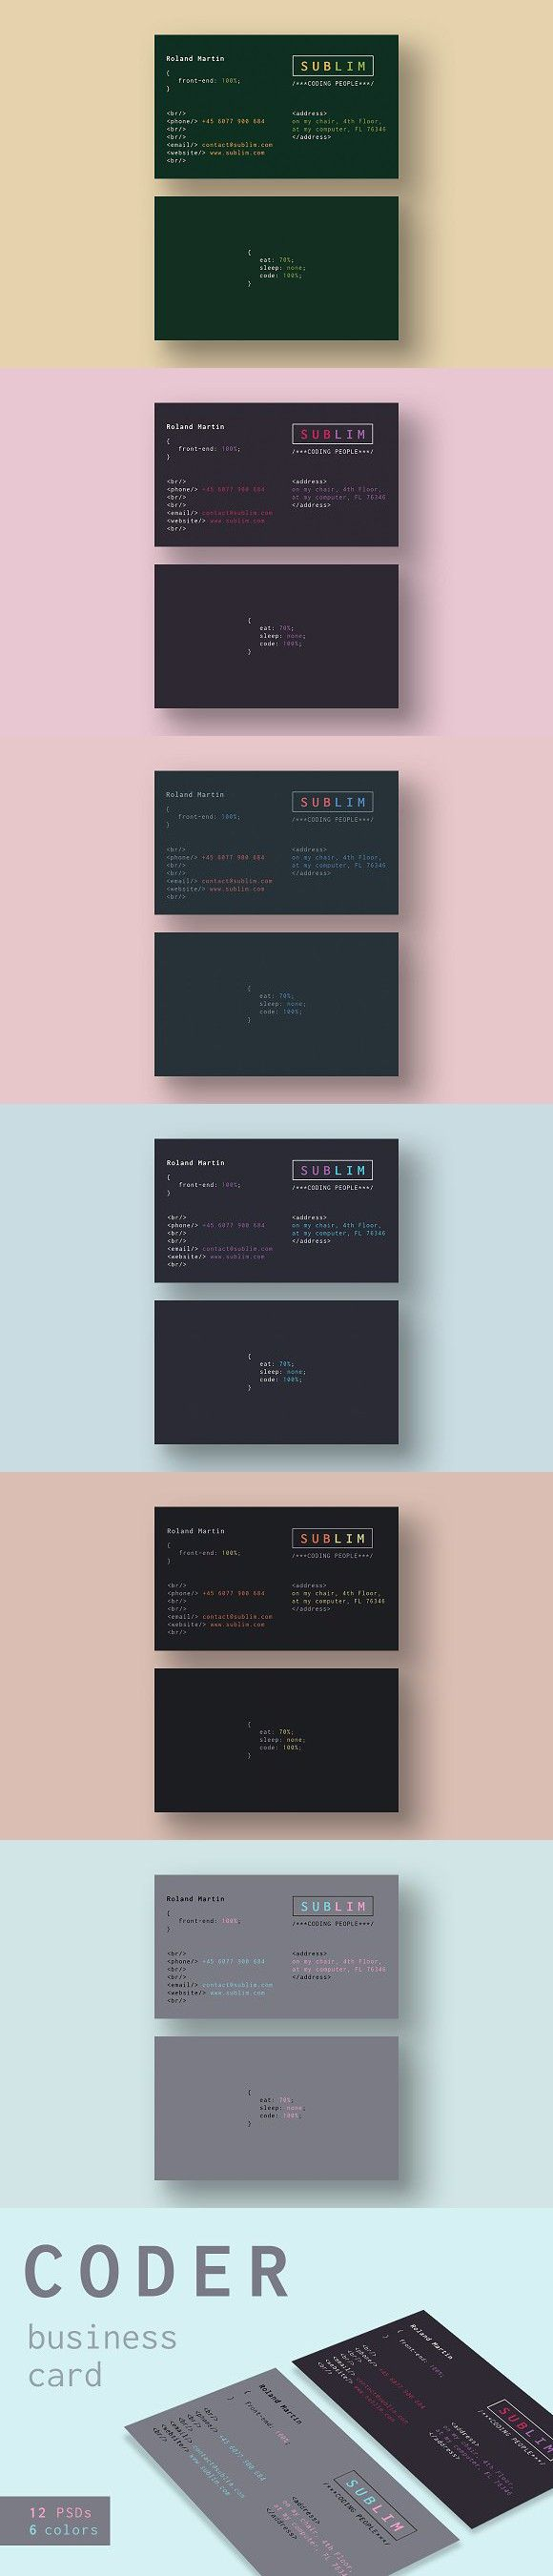 Coder Developer Business Cards Card Templates Designs Visit